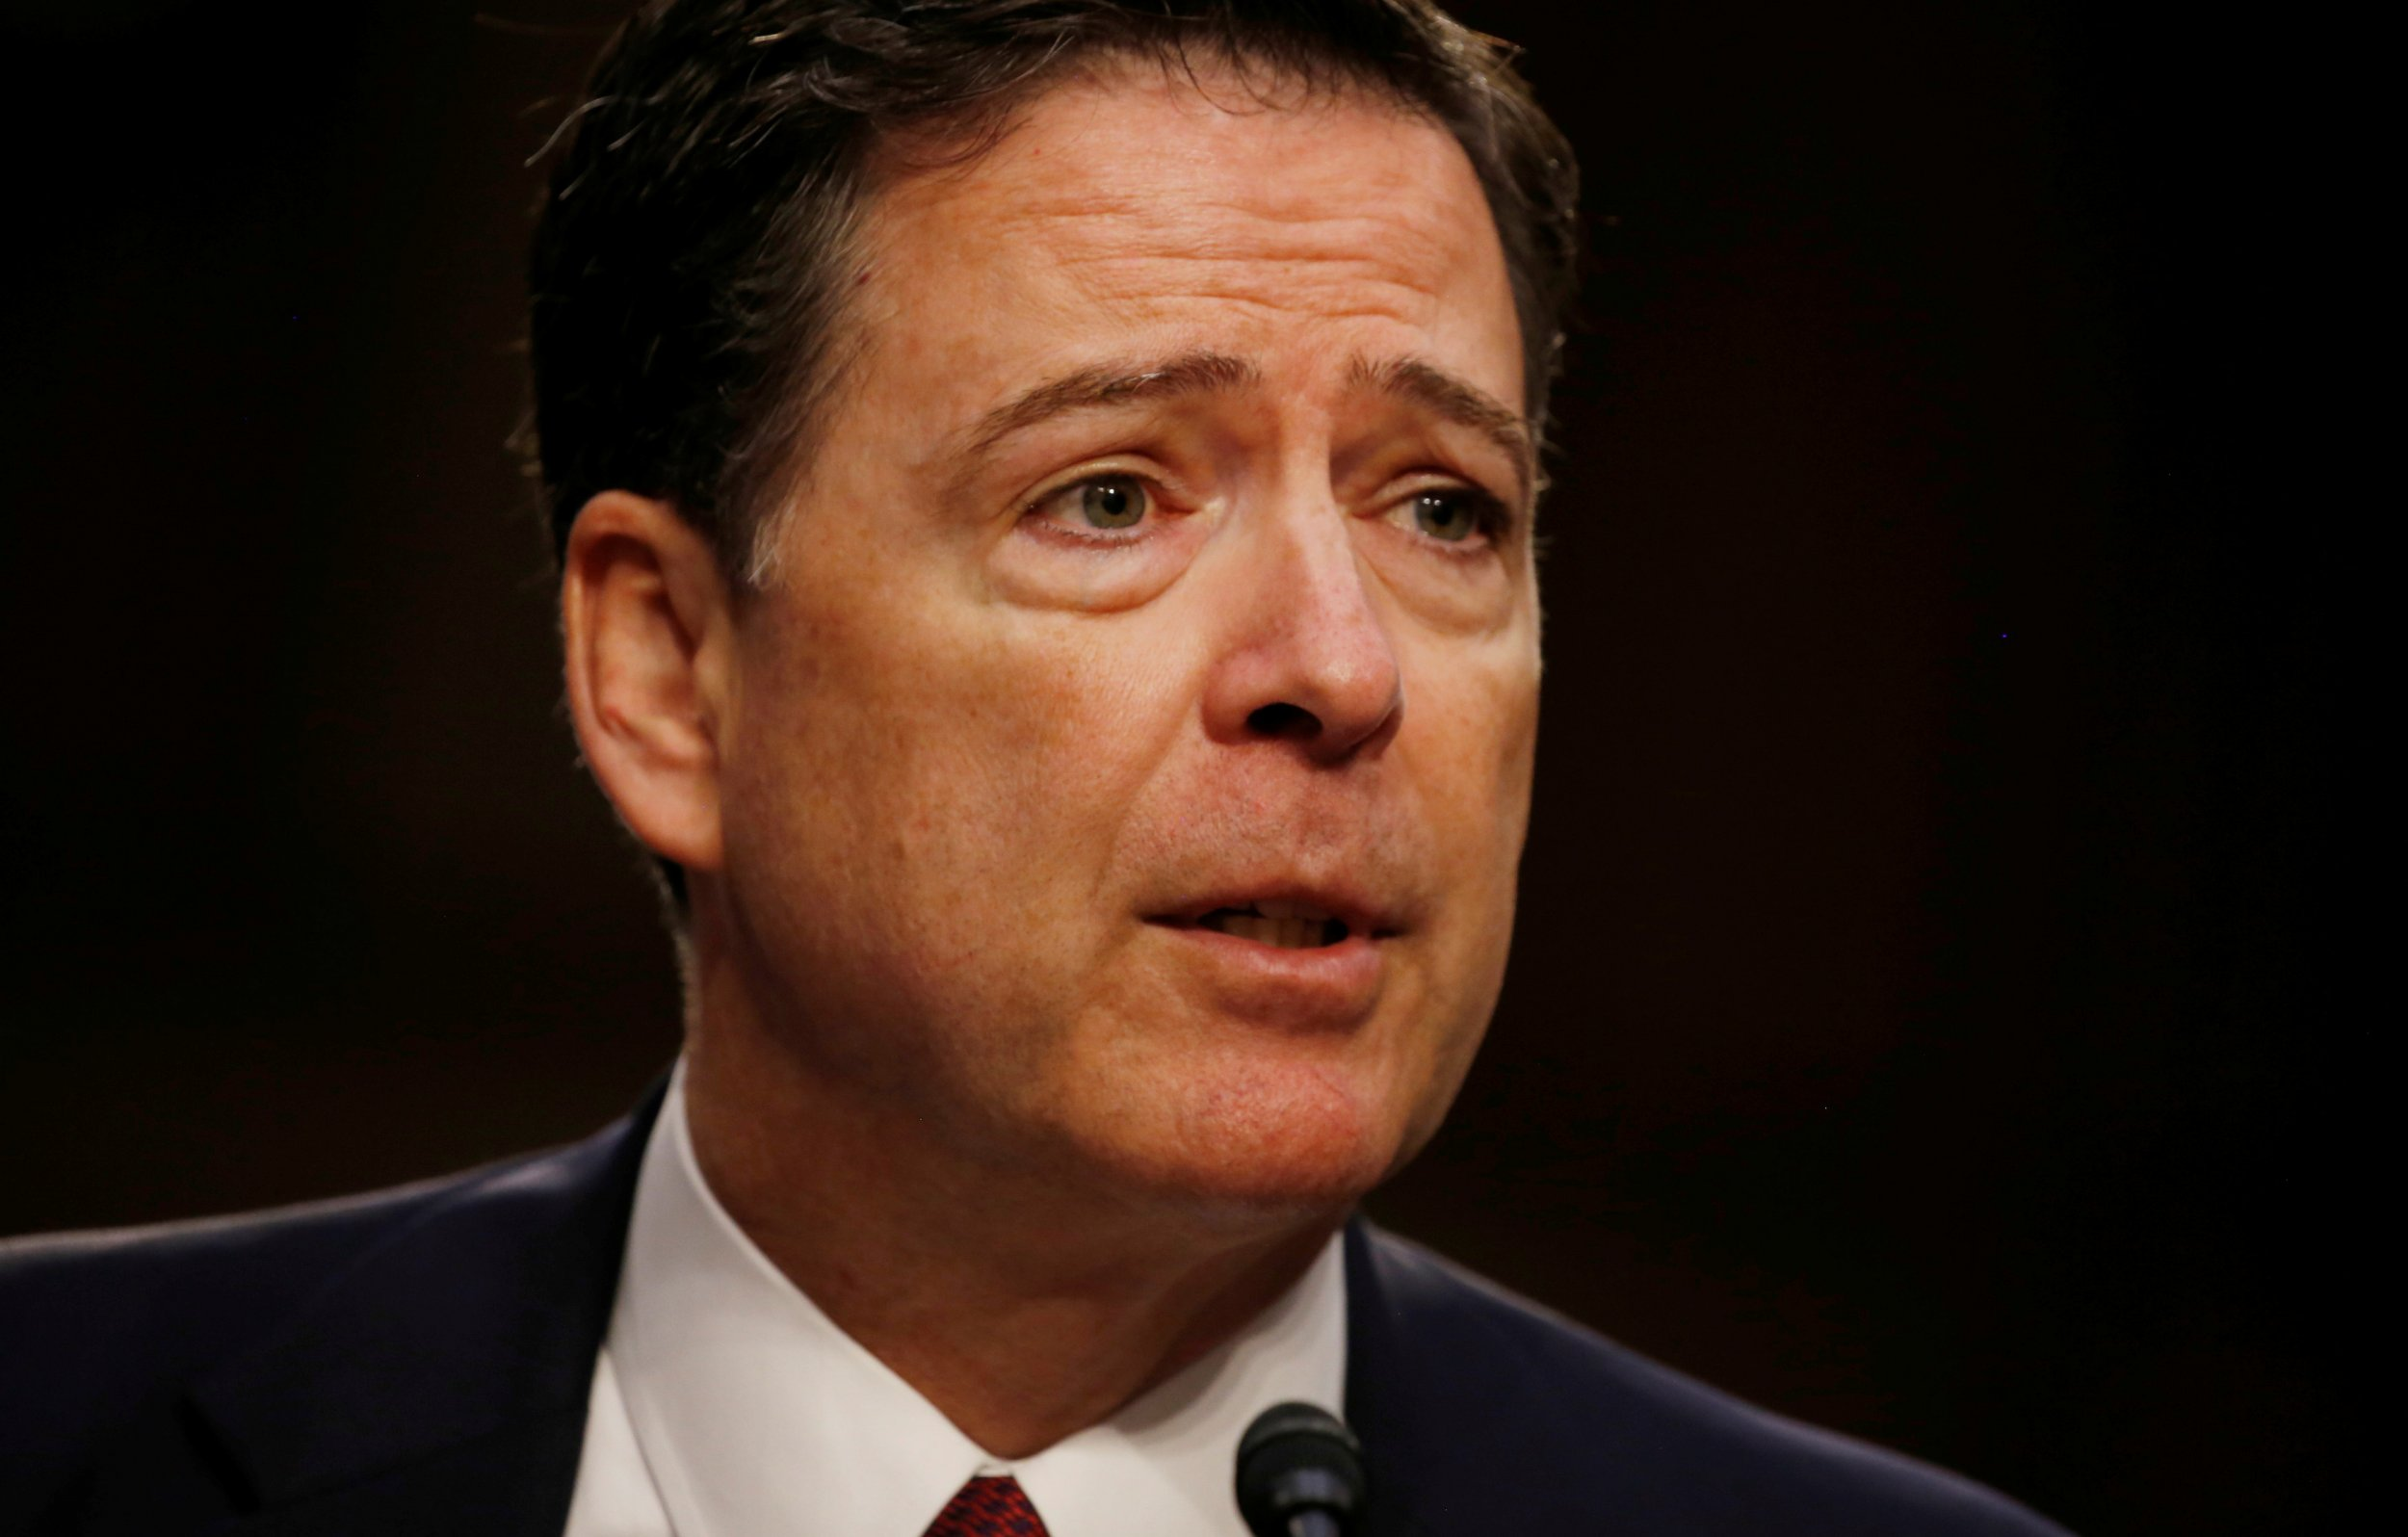 What Does James Comey Know About Donald Trump, Hillary Clinton and the FBI?